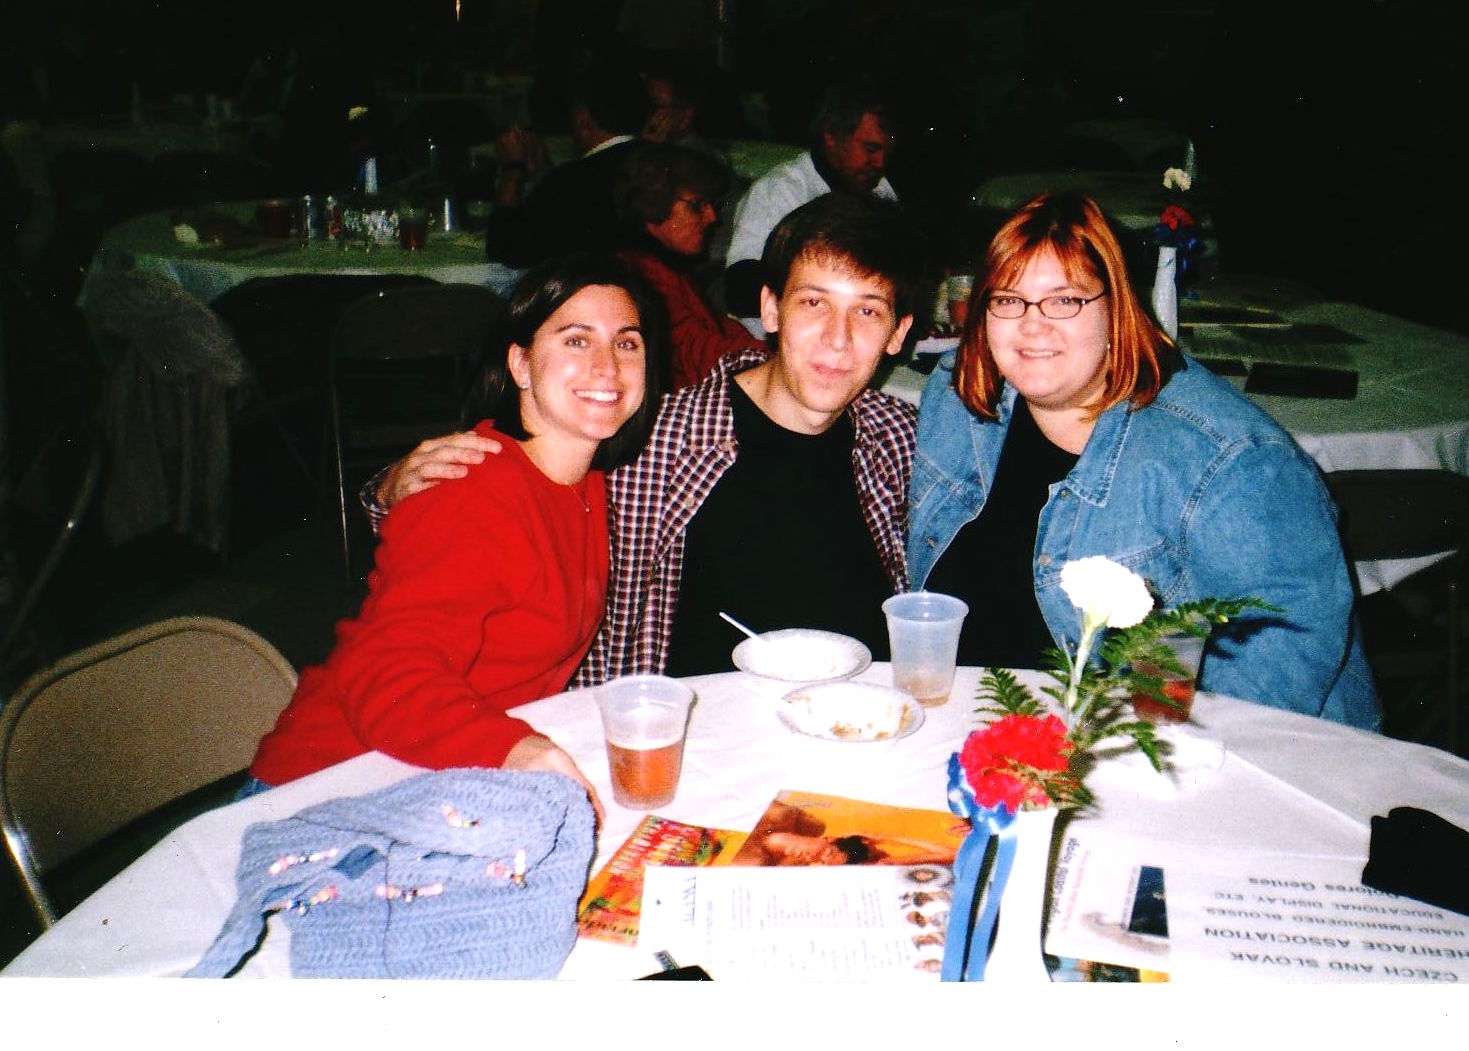 Darra Klein (right), and her lifelong friend, David Čeljuska (center) attending Baltimore's annual Slovak festival in 2001 with another friend.